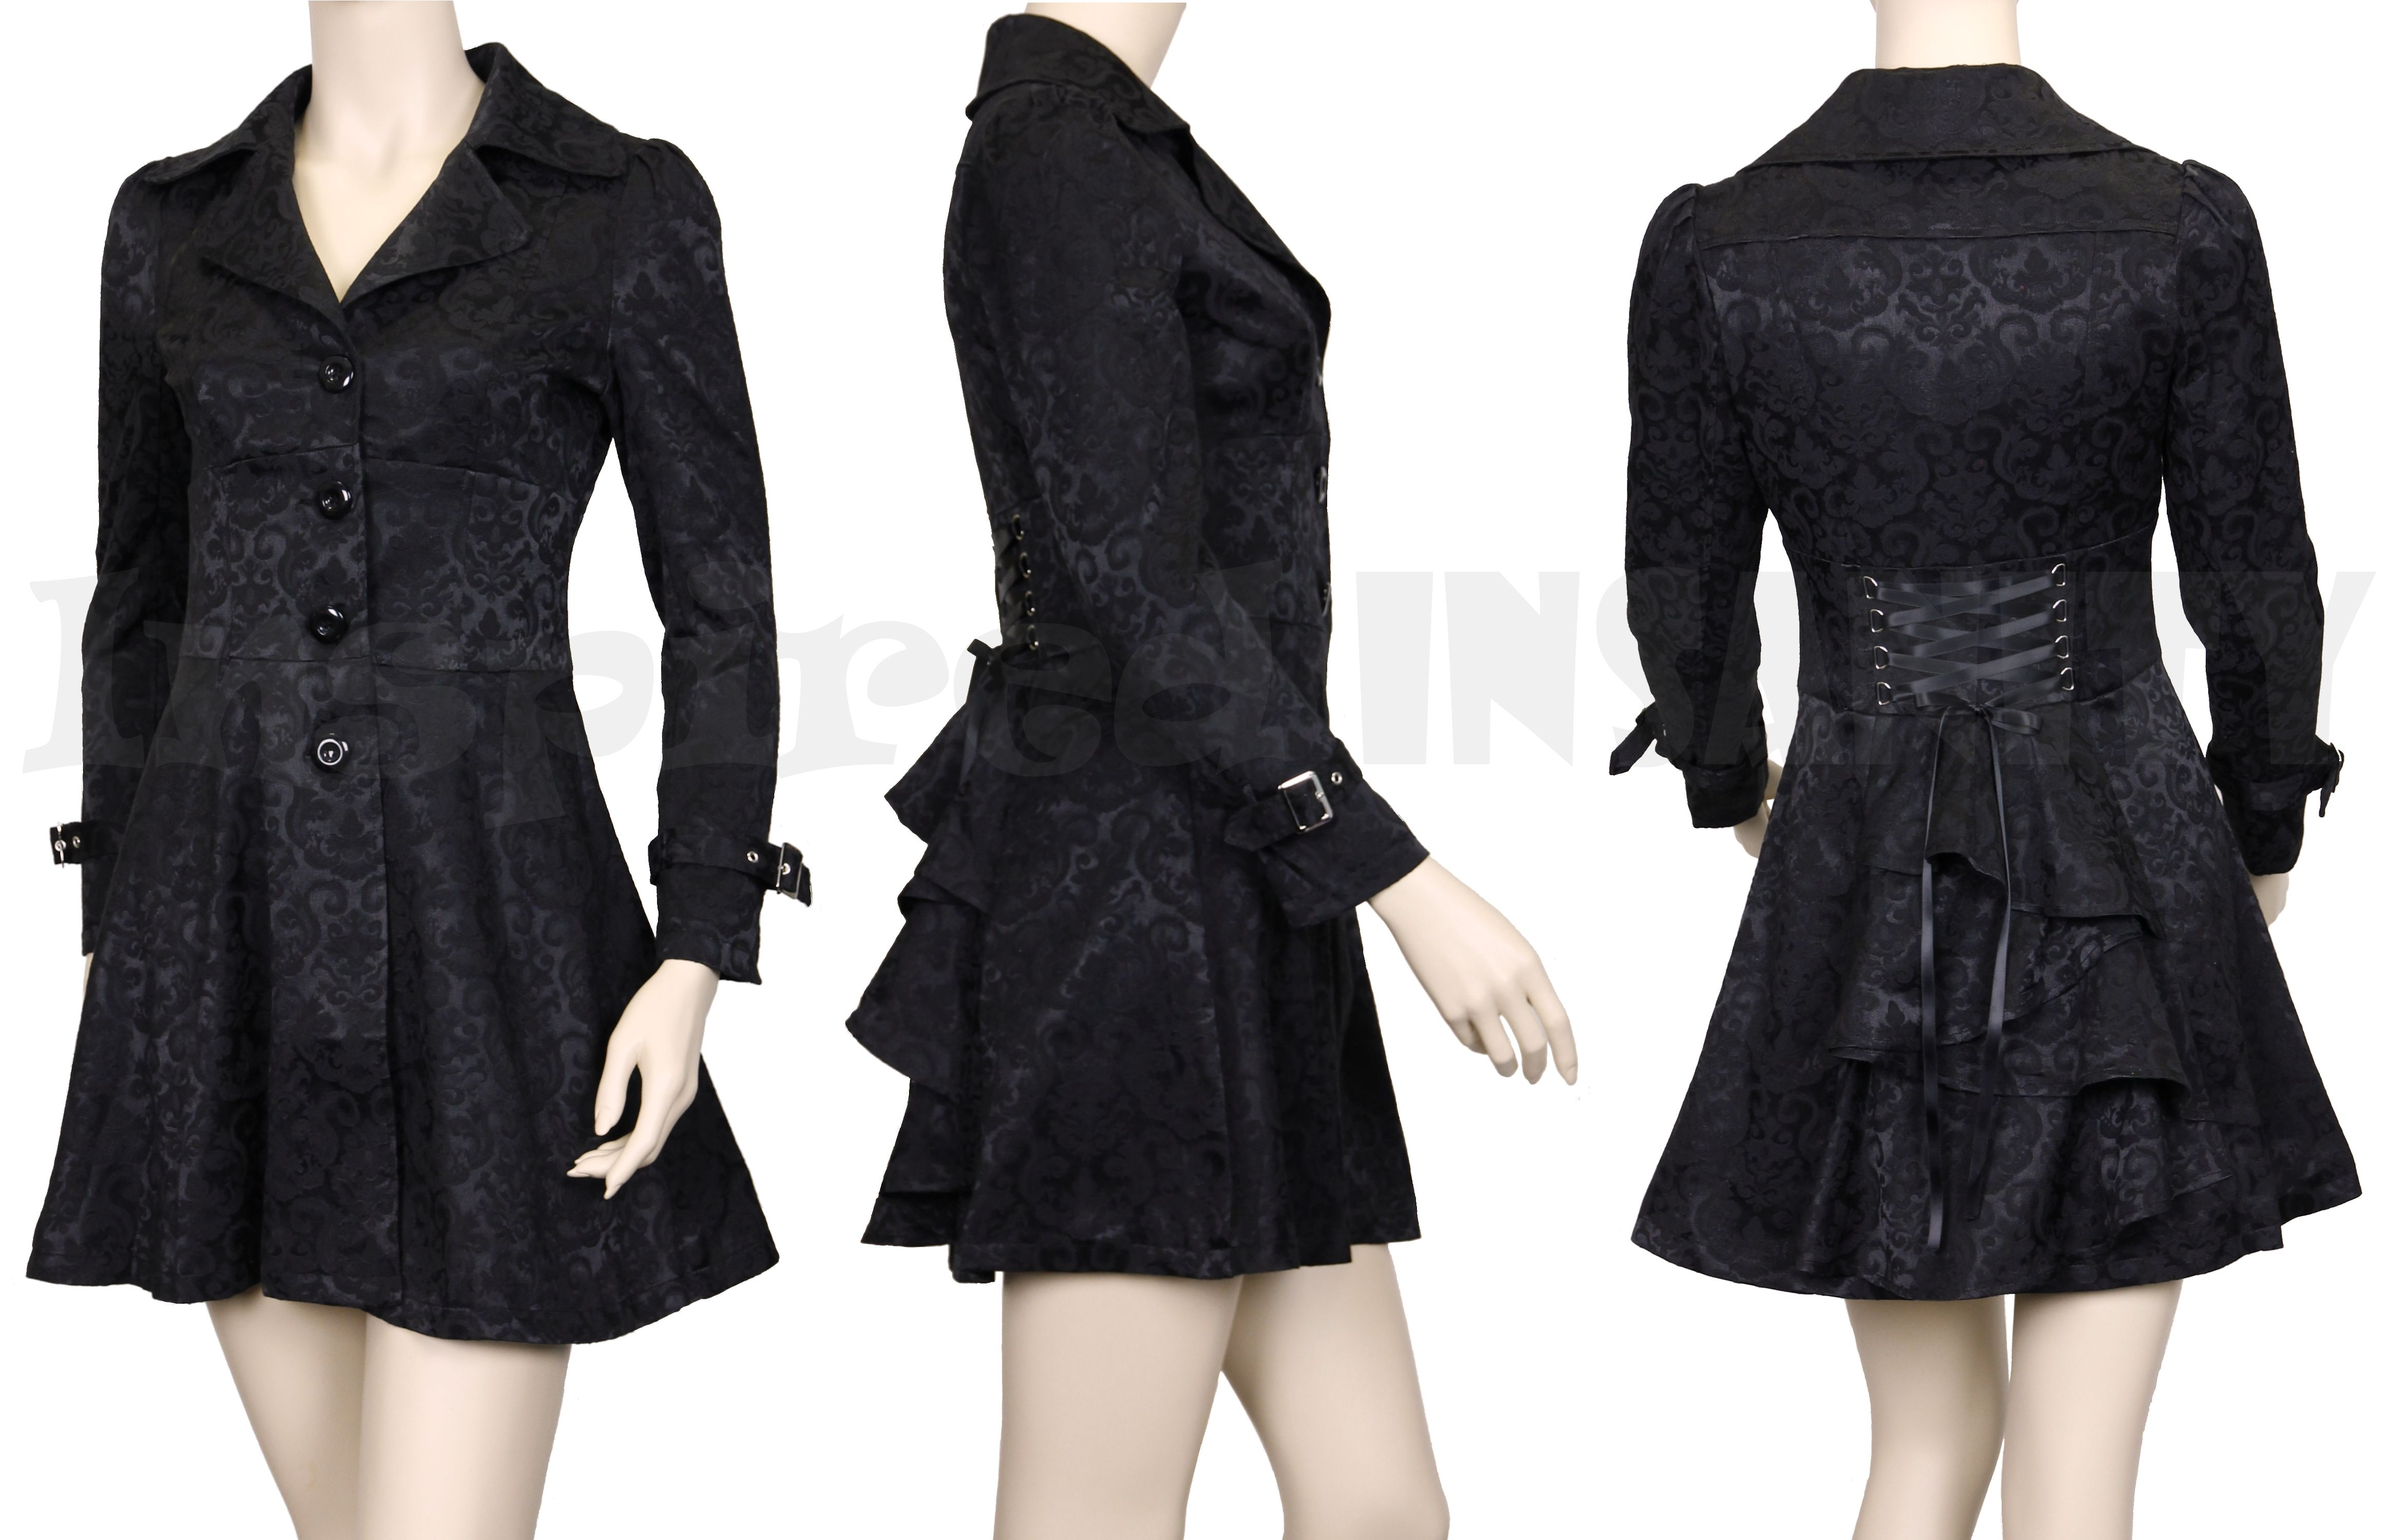 NEW – Damask Bustle & Corset Jacket , available in plus sizes!